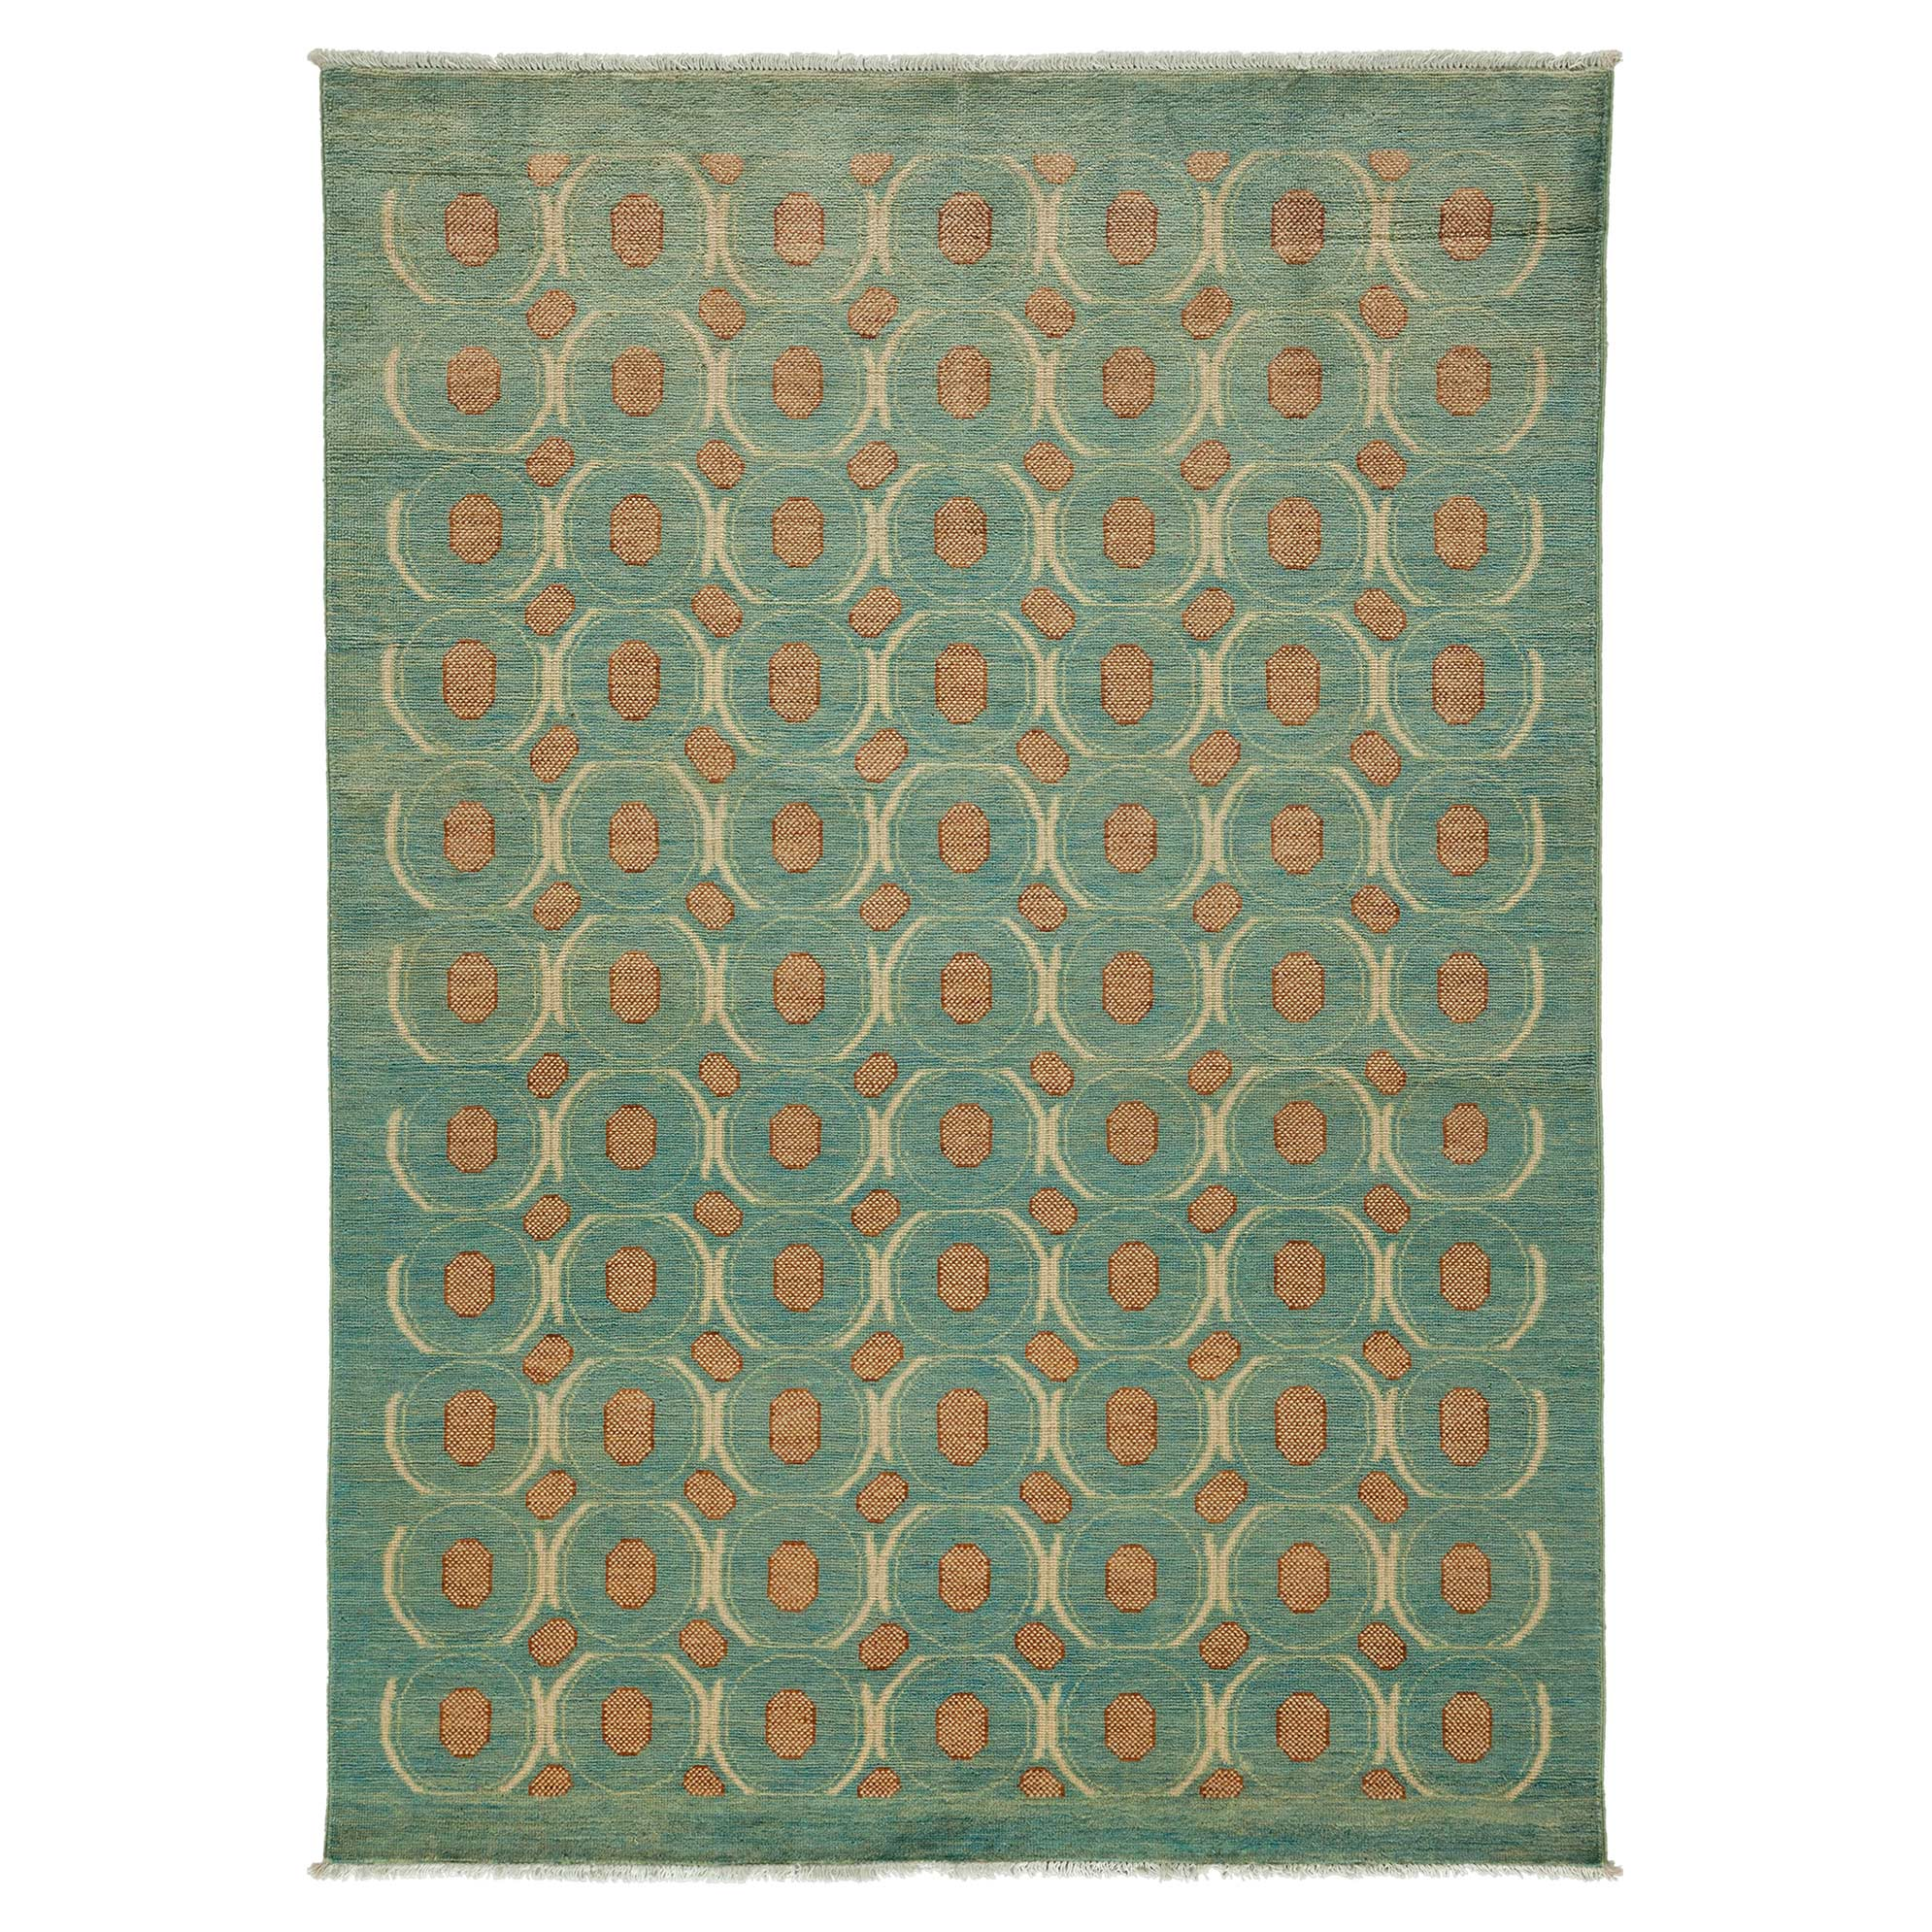 Neo Global Modern Blotted Blue Wool Rug - 5'2 x 7'1